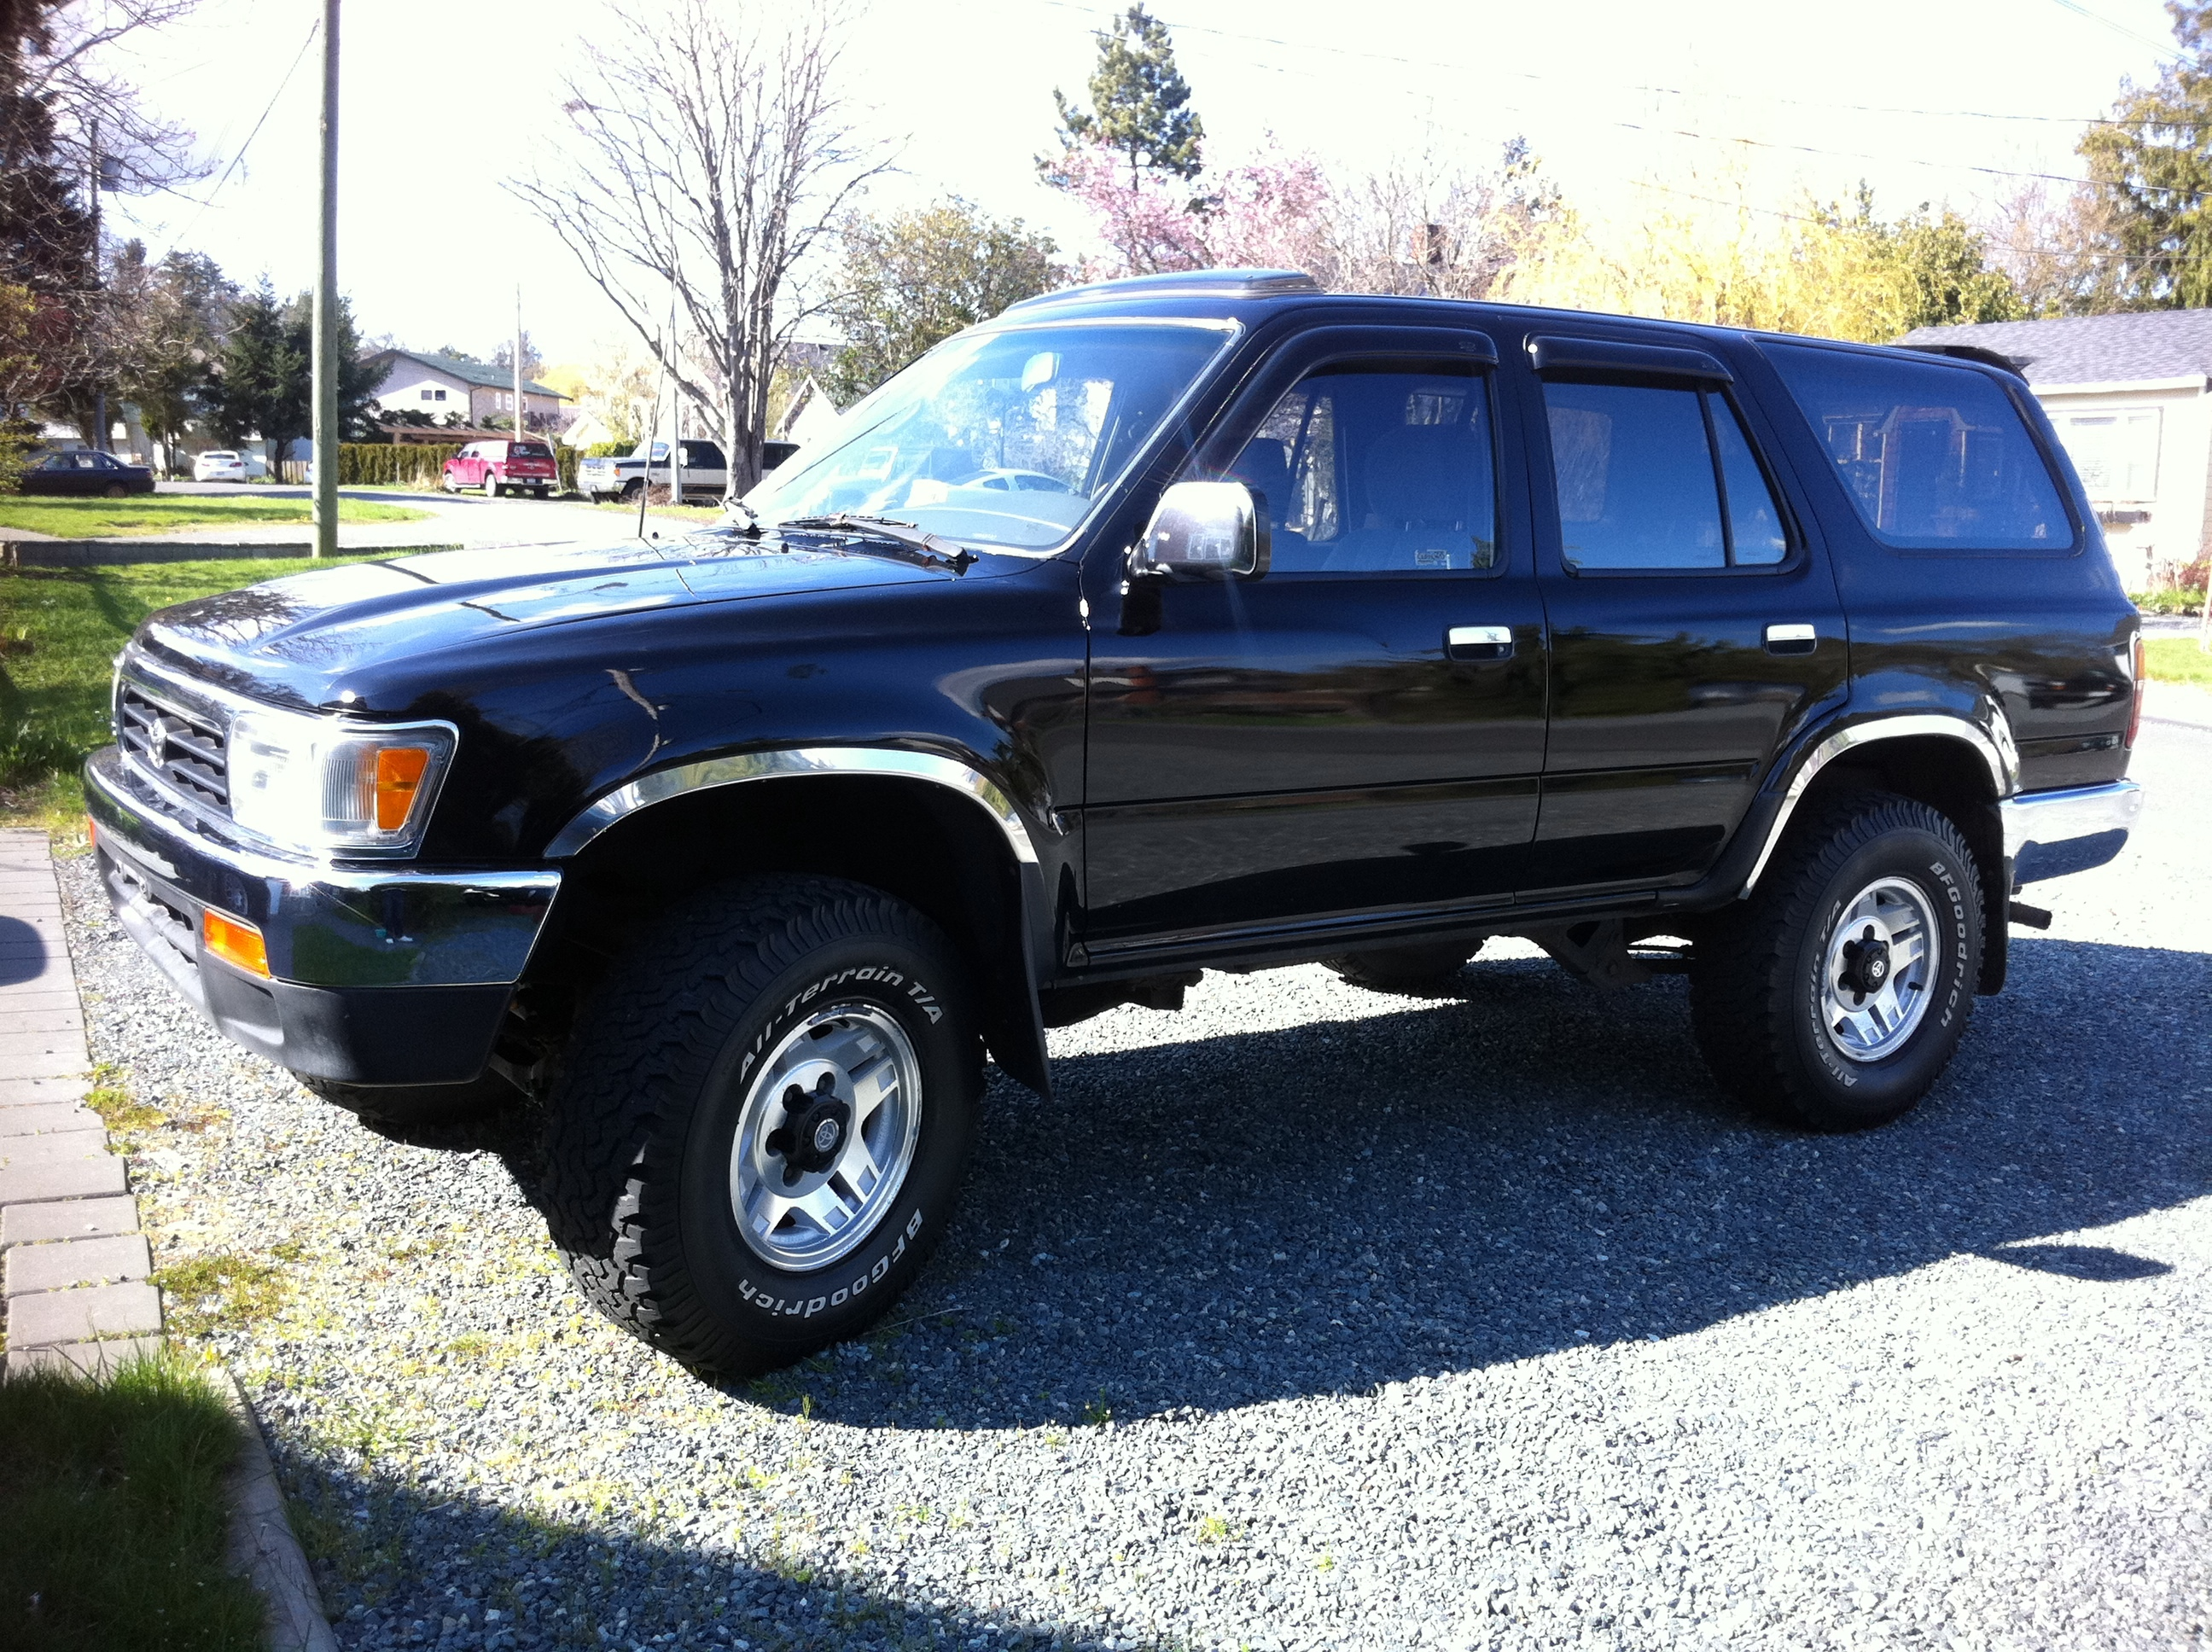 Tires North Vancouver >> theshanergy's 93 Toyota 4Runner | Vancouver Island Off Road